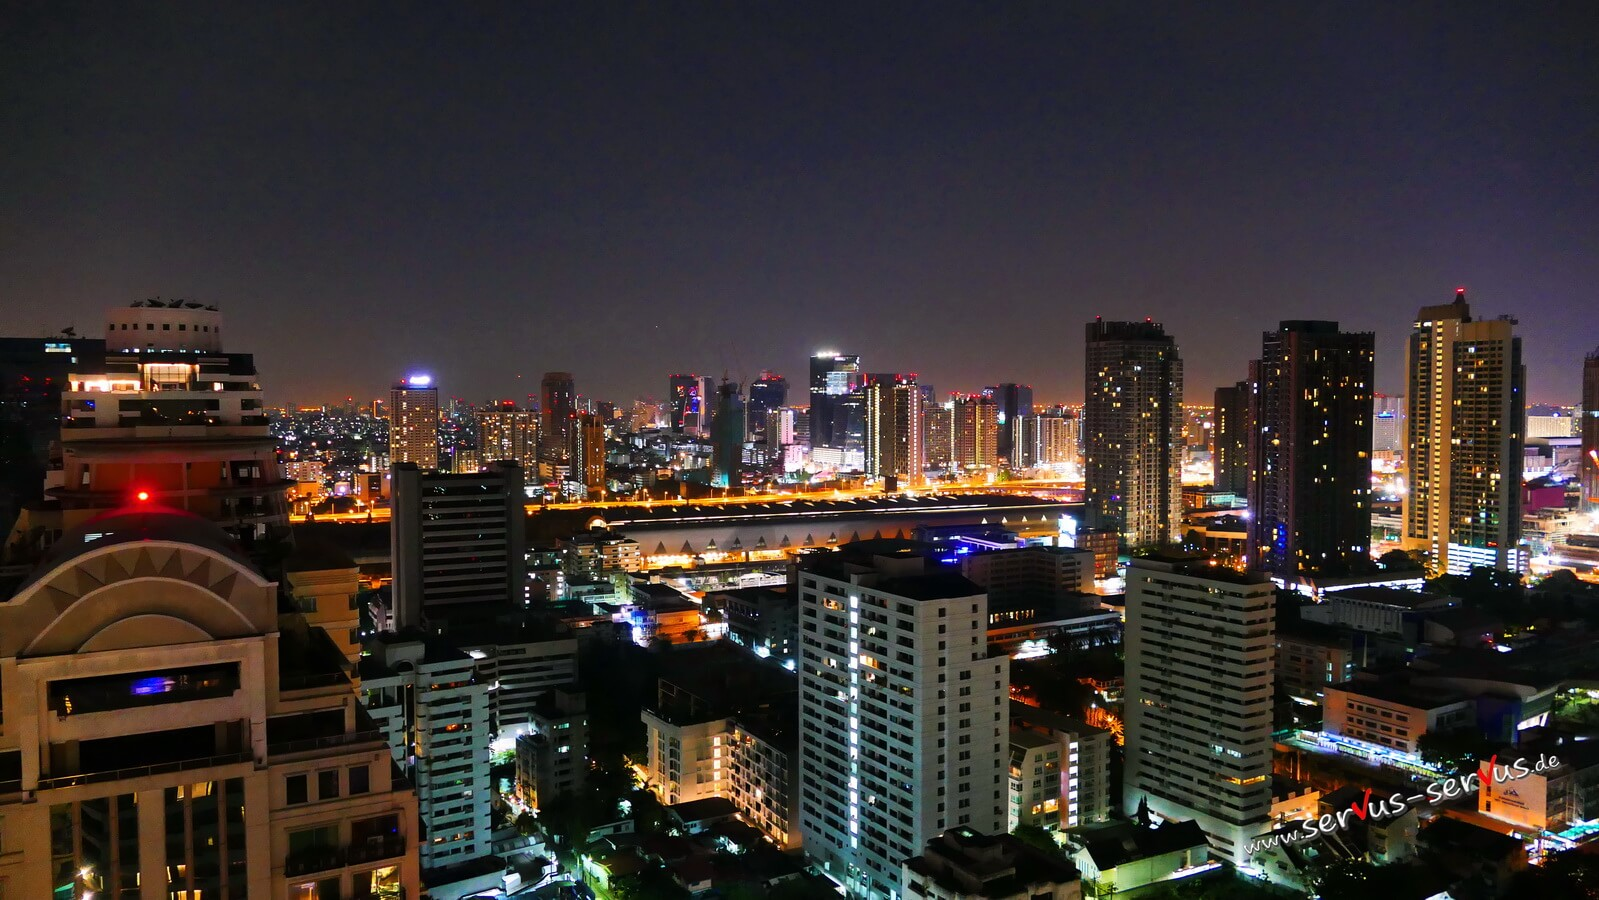 Aussicht vom 37 Stock in Bangkok